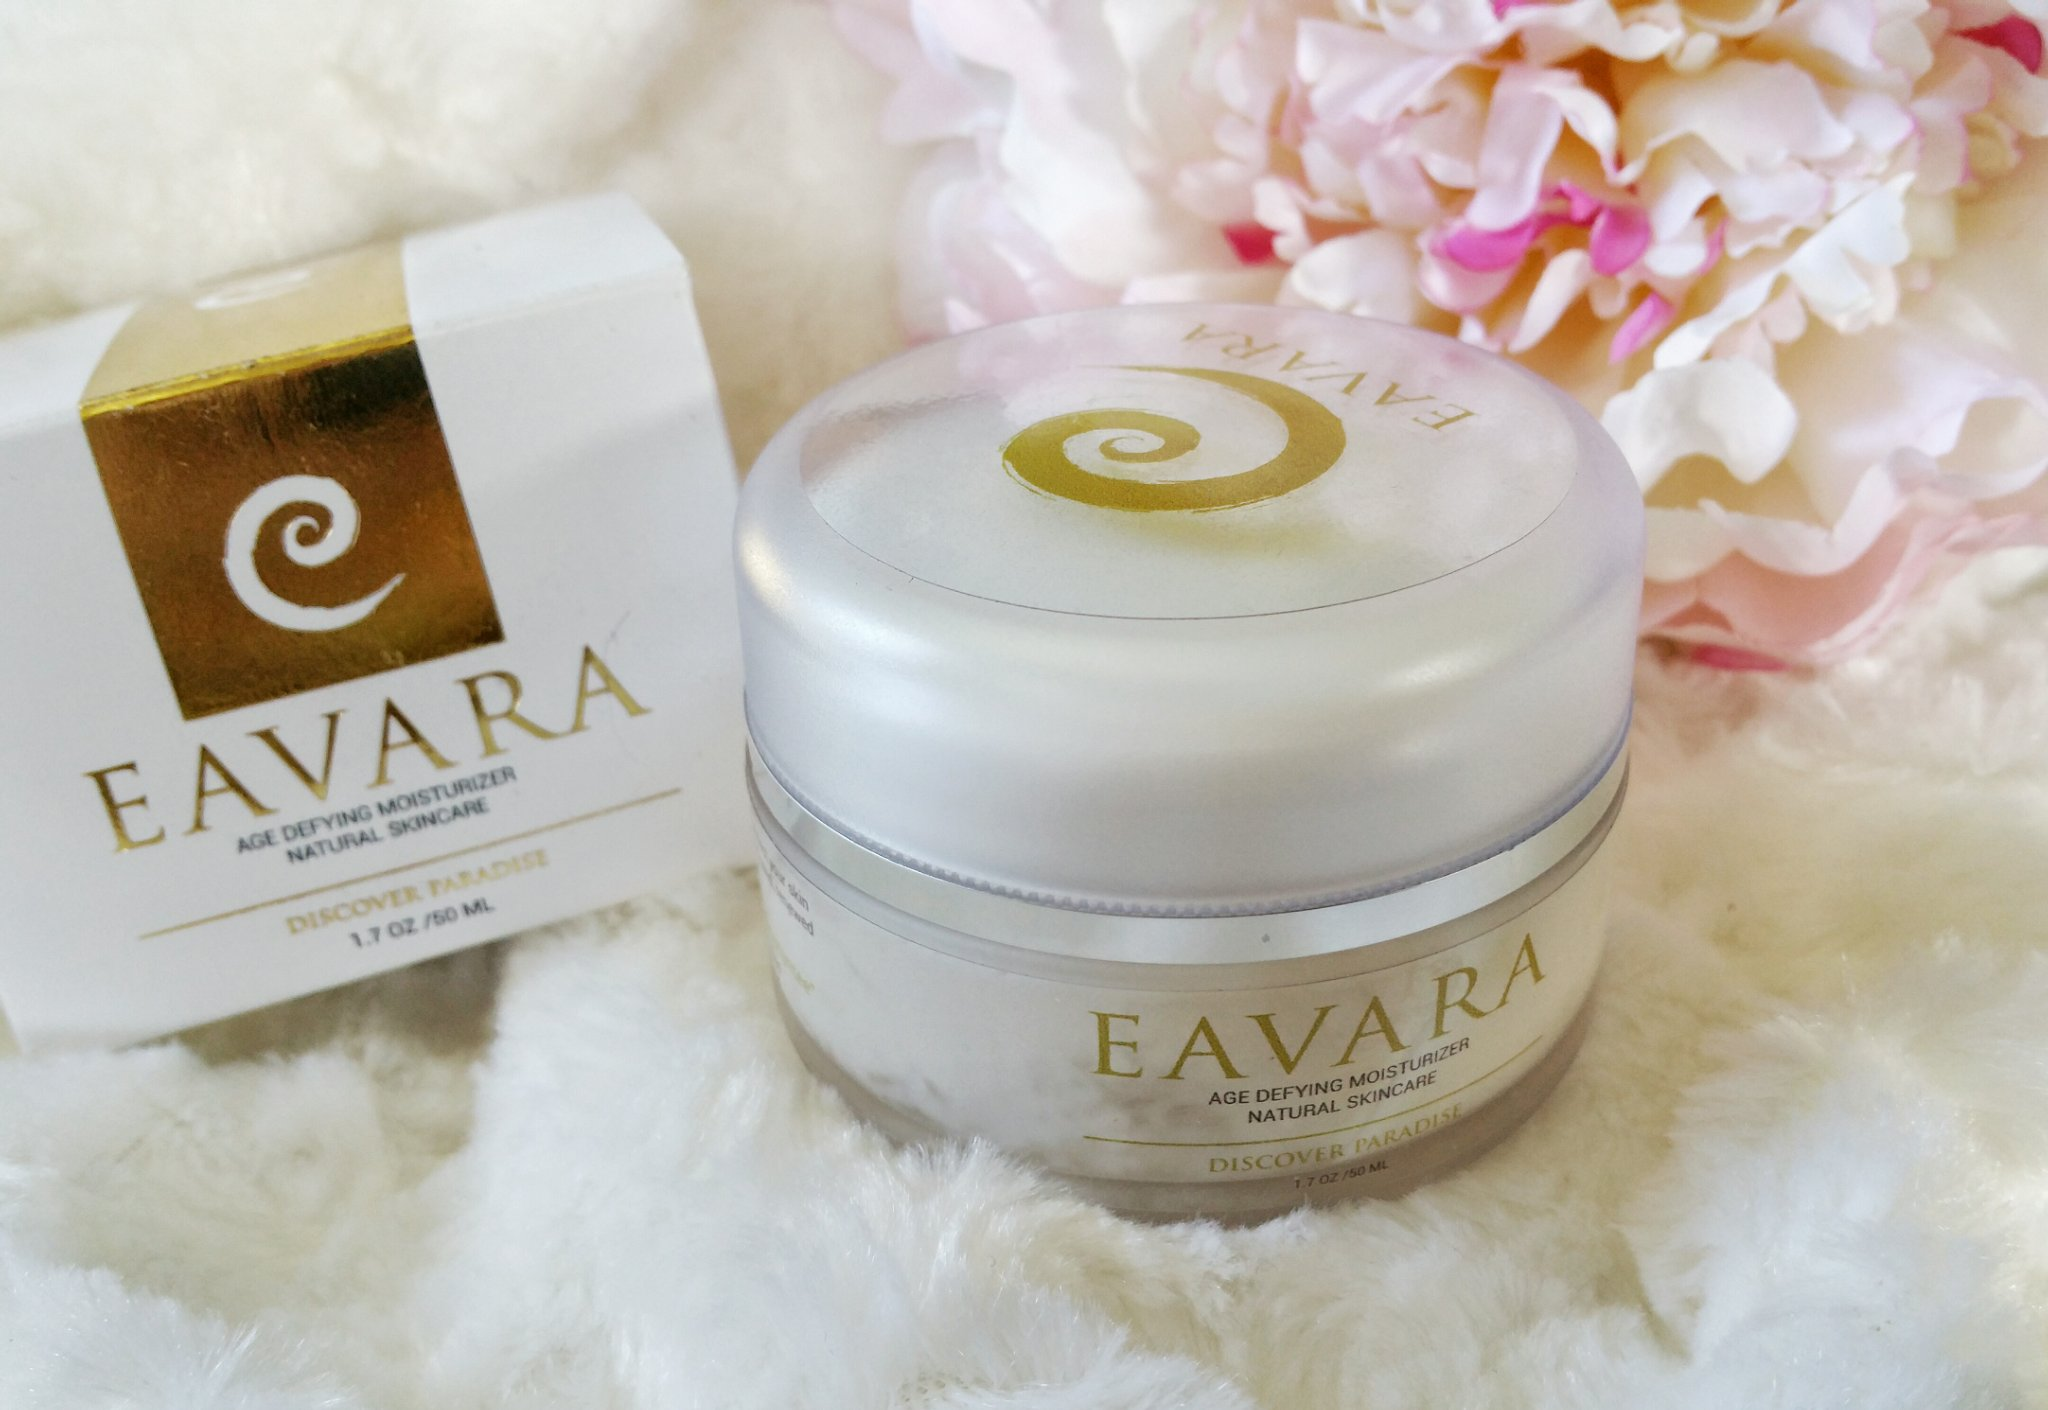 age defying, moisturizer, Eavara, made in USA, cruelty free, organic, skin care, skin, facial moisturizer, hawaii, skin loving ingredients, coconut oil, moisturizer, anti-aging,